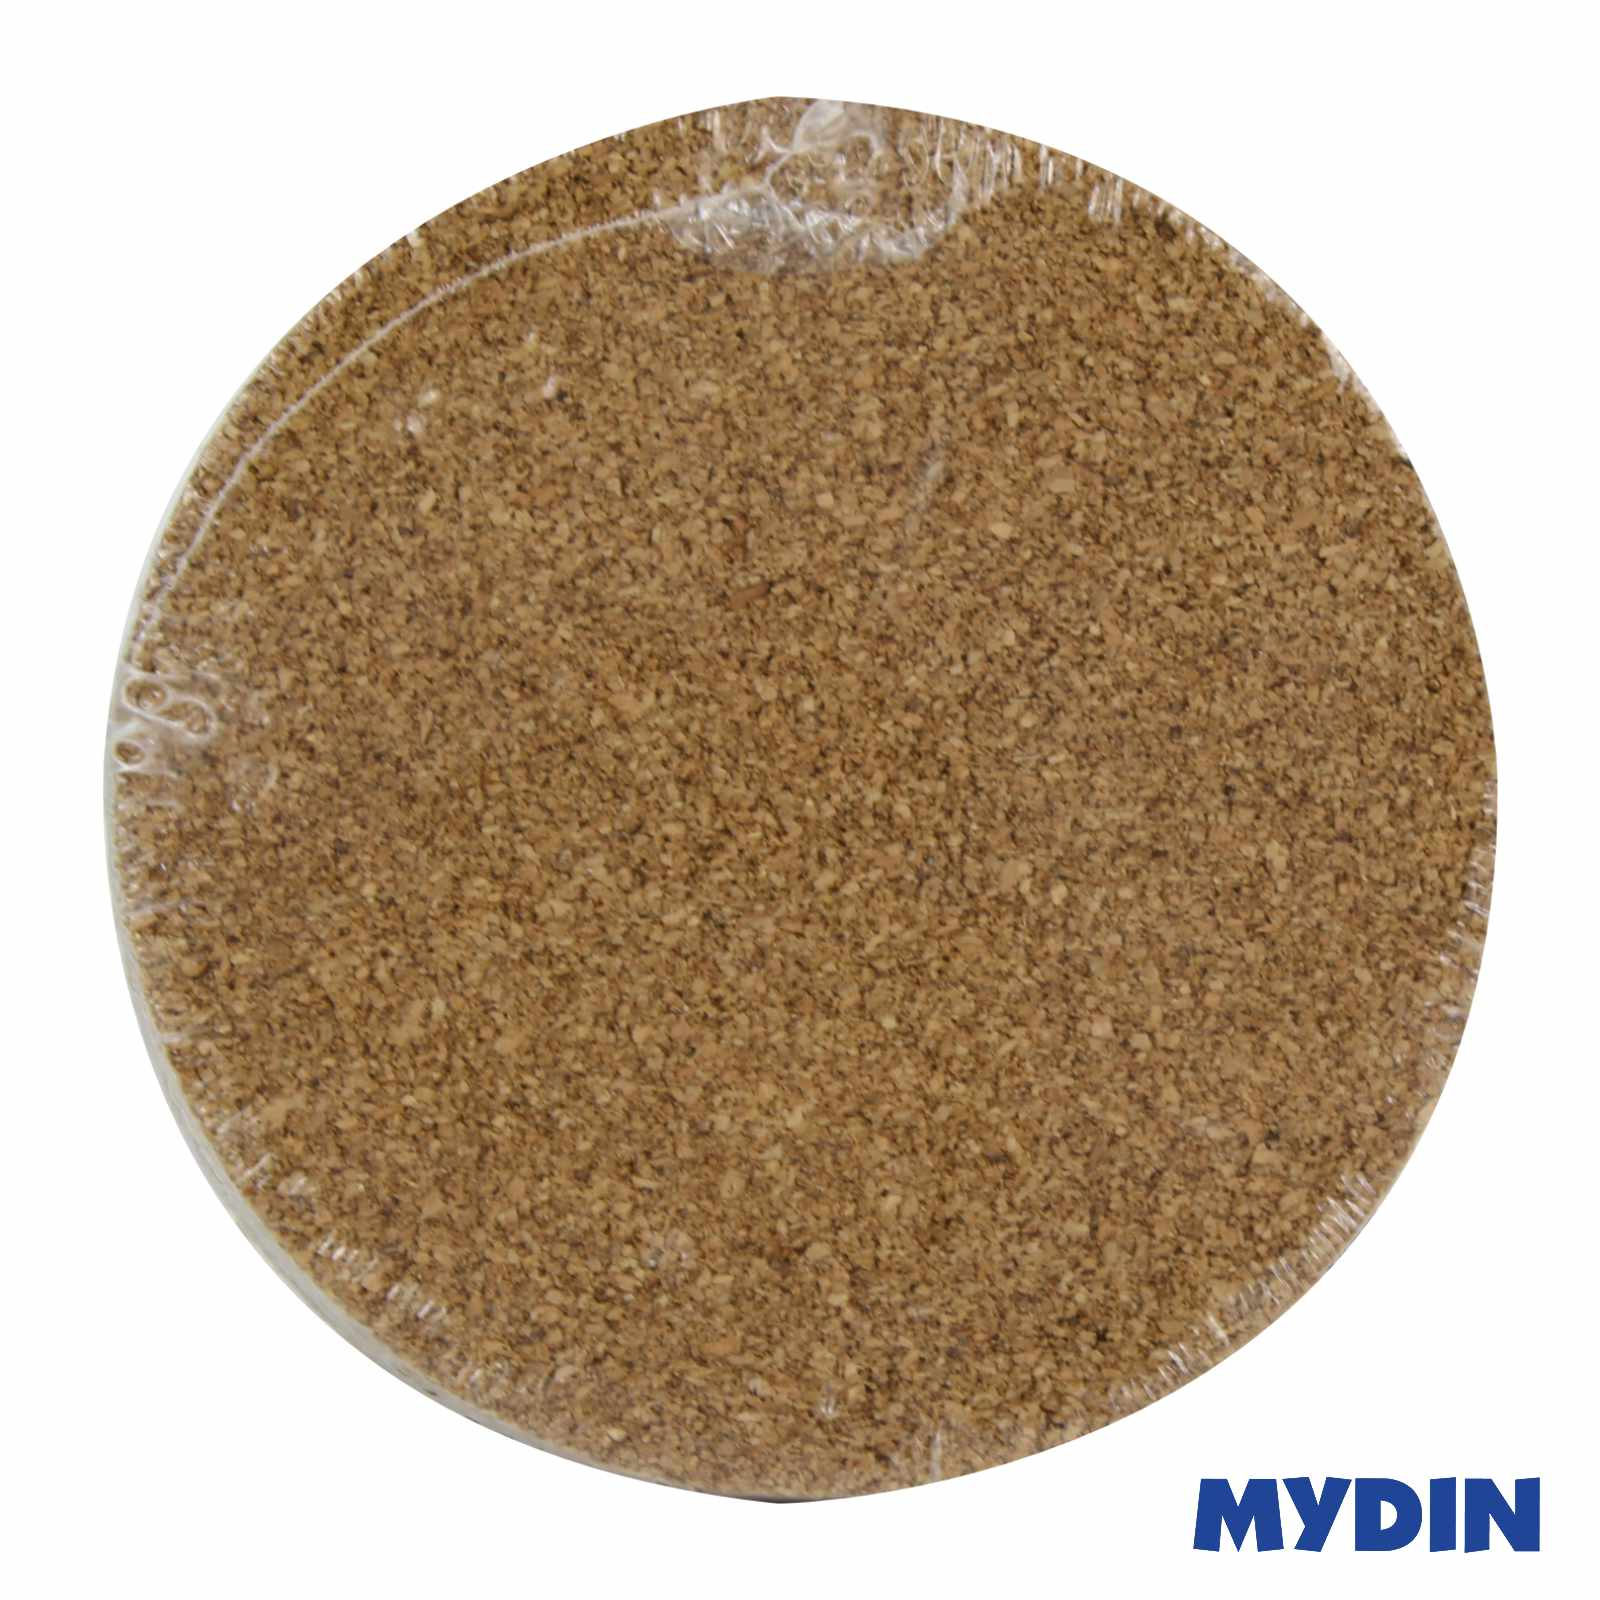 My Home Wooden Round Heat Pad (3 x 19cm) IKE-3IN1